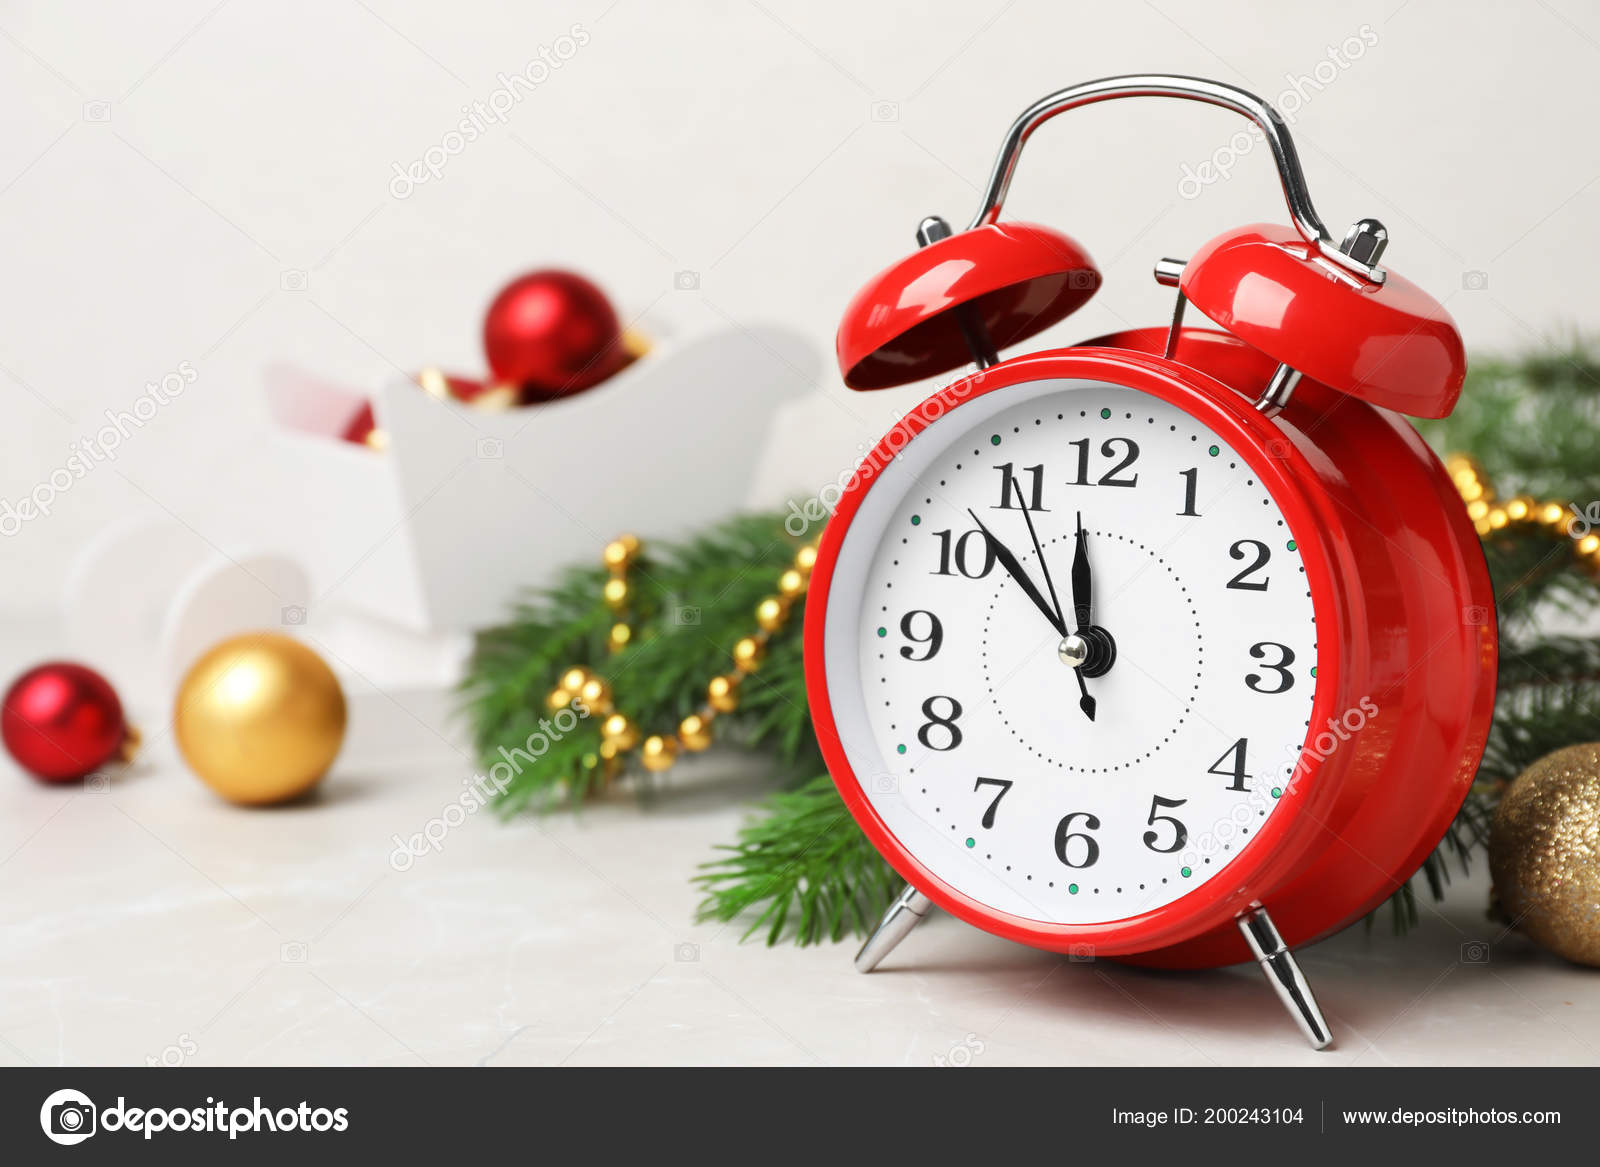 Countdown To Christmas Clock.Retro Alarm Clock Decor Table Christmas Countdown Stock